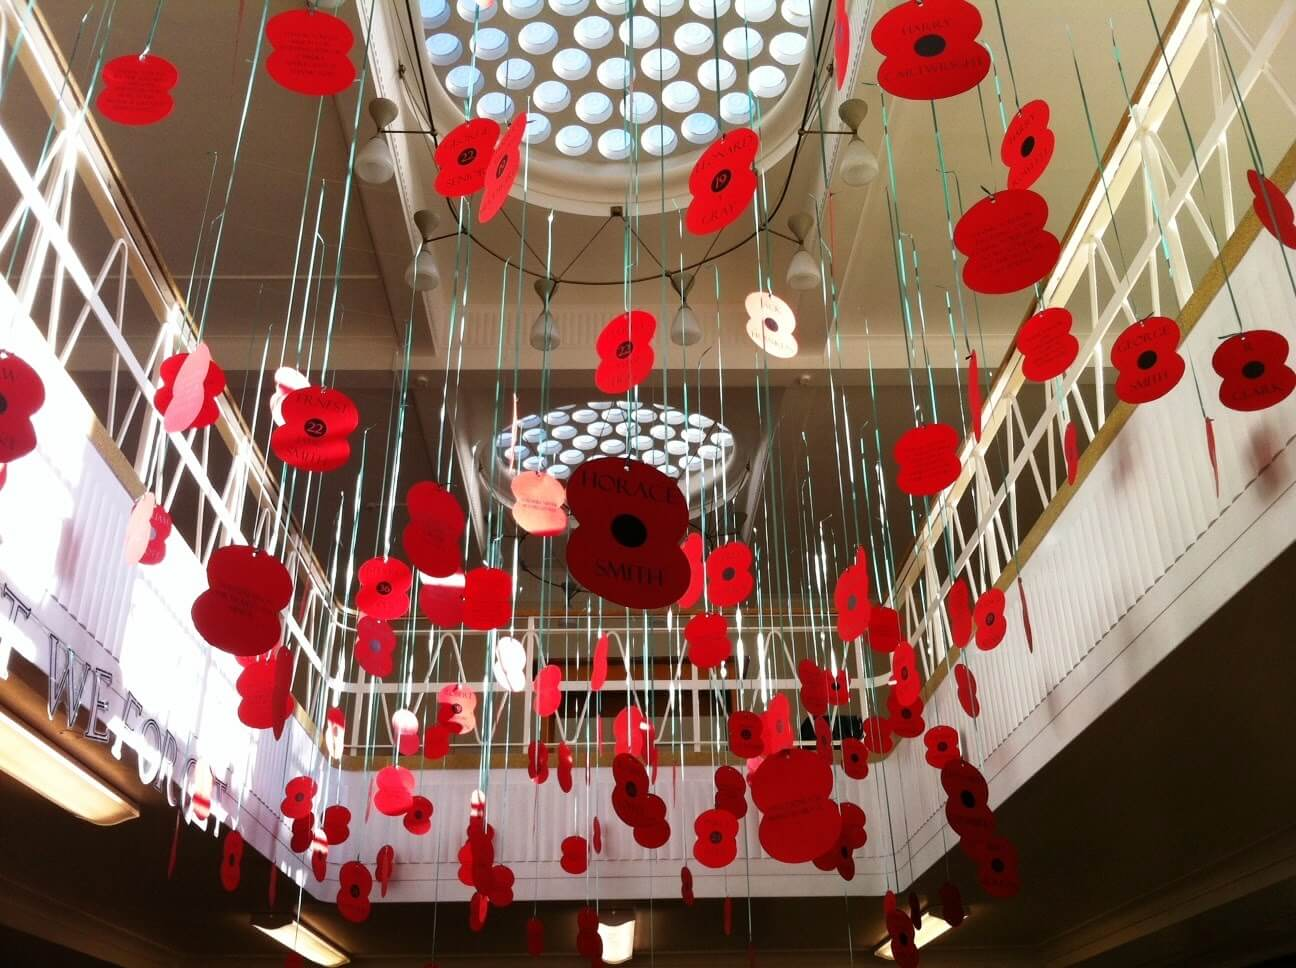 World War One, 100 years. Hanging poppies on display at Stratton Upper School library, Bedfordshire, England.